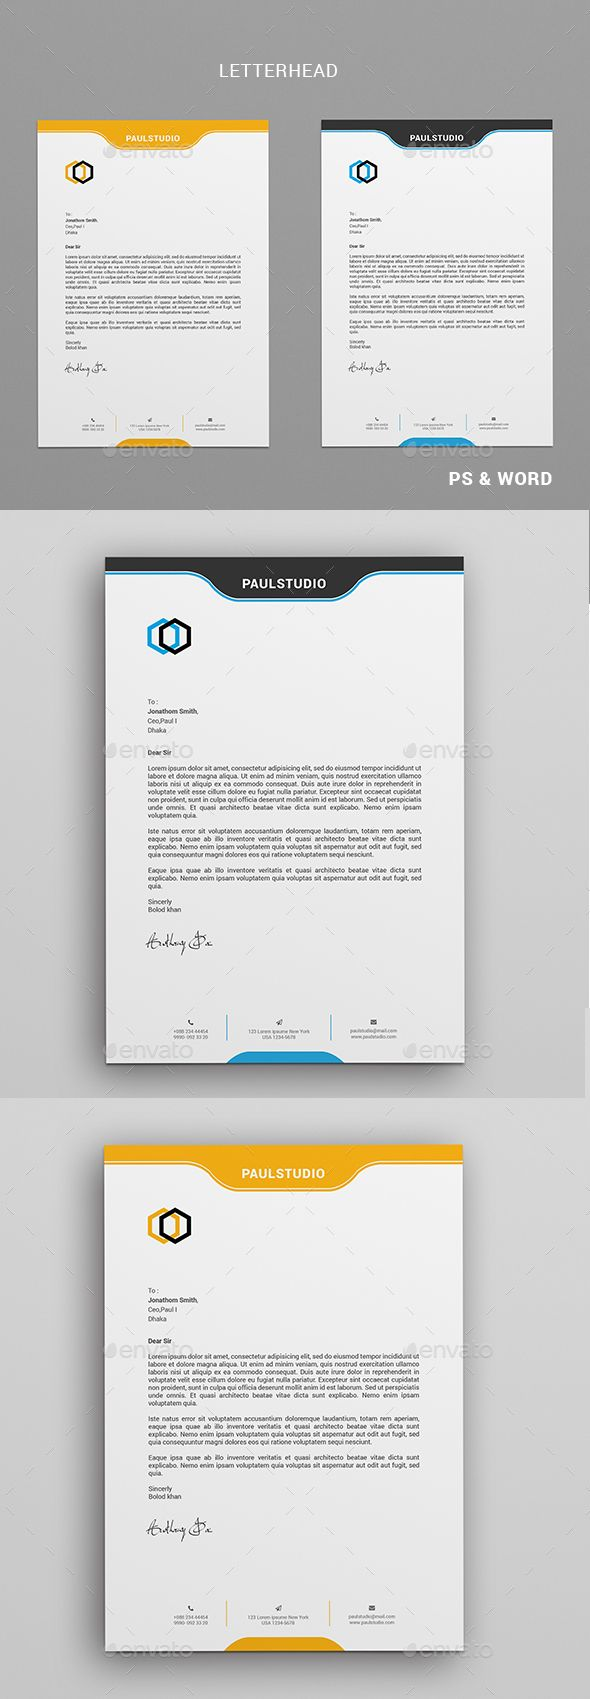 Corporate Business Letterhead Design Template - Stationery Print Template PSD. Download here: https://graphicriver.net/item/letterhead/19106890?ref=yinkira